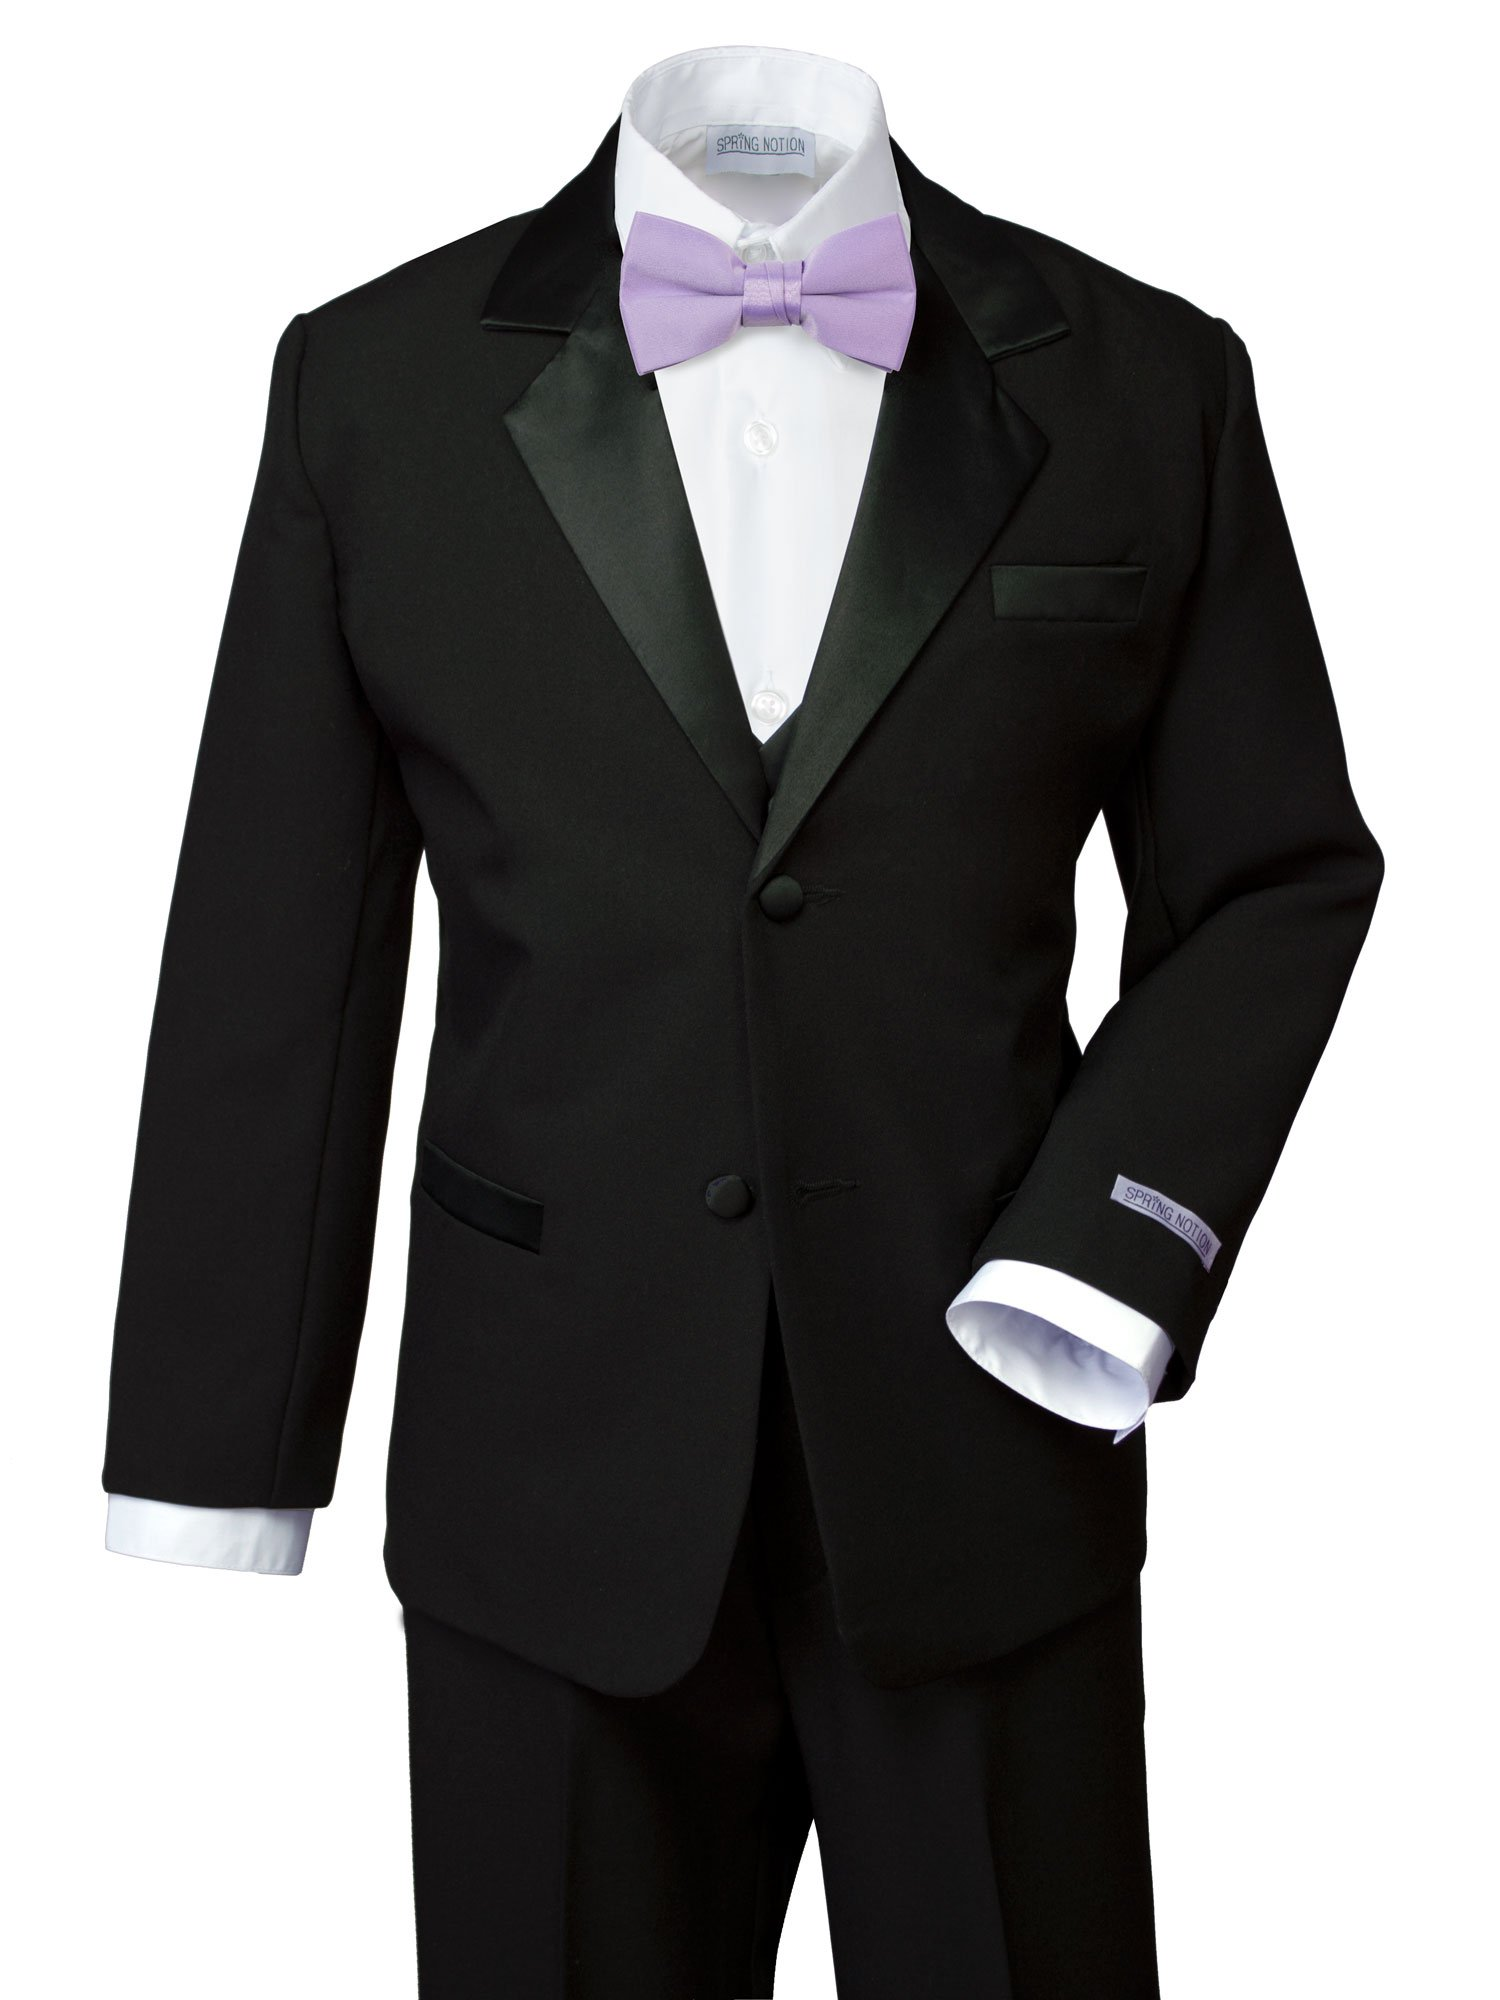 Spring Notion Boys' Classic Fit Tuxedo Set, No Tail Medium/6-12M Black-Lilac